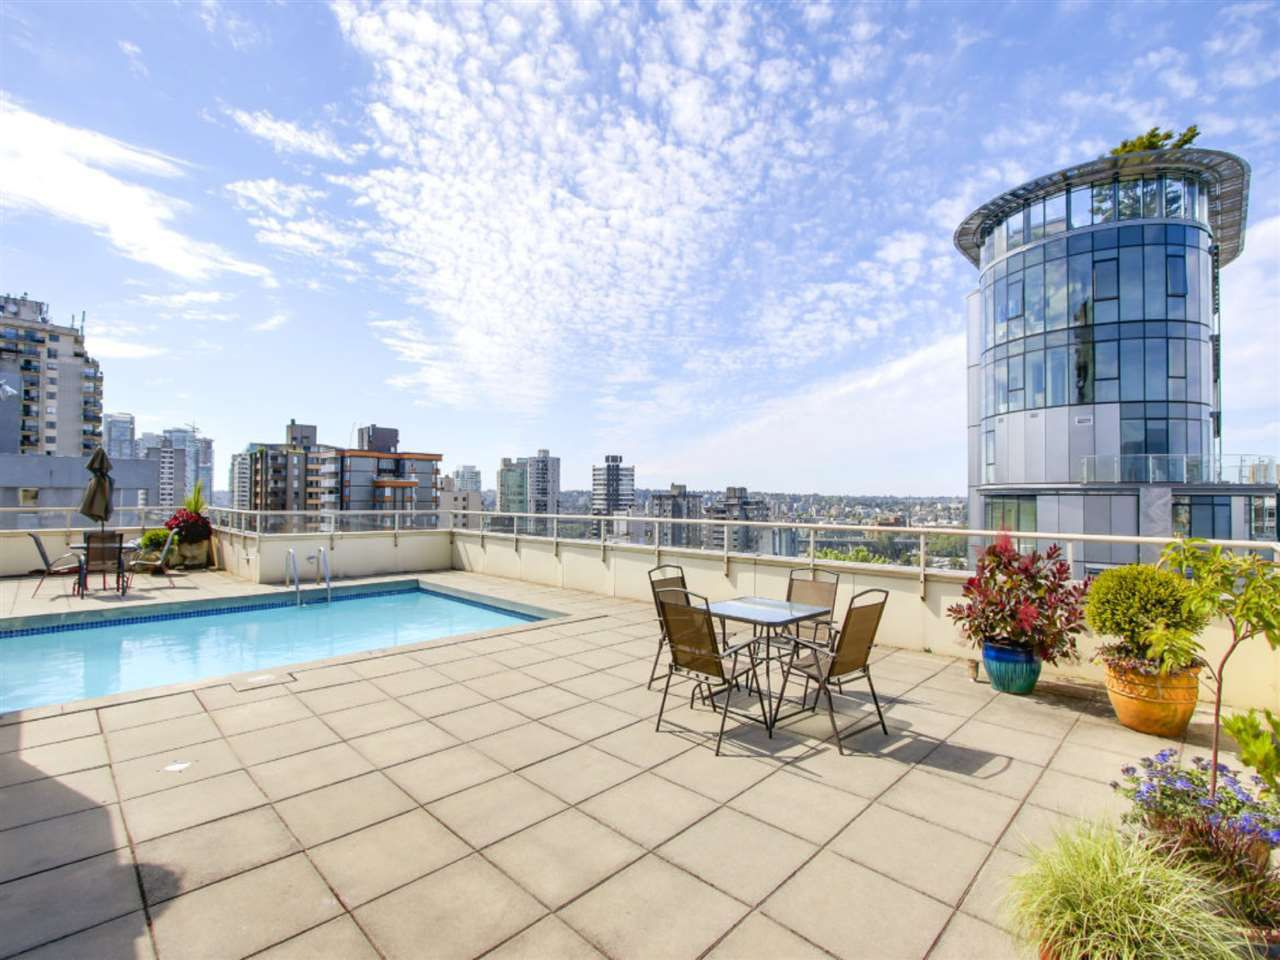 Main Photo: 204 1250 N Burnaby Street in Vancouver: Condo for sale (Vancouver West)  : MLS®# R2319344